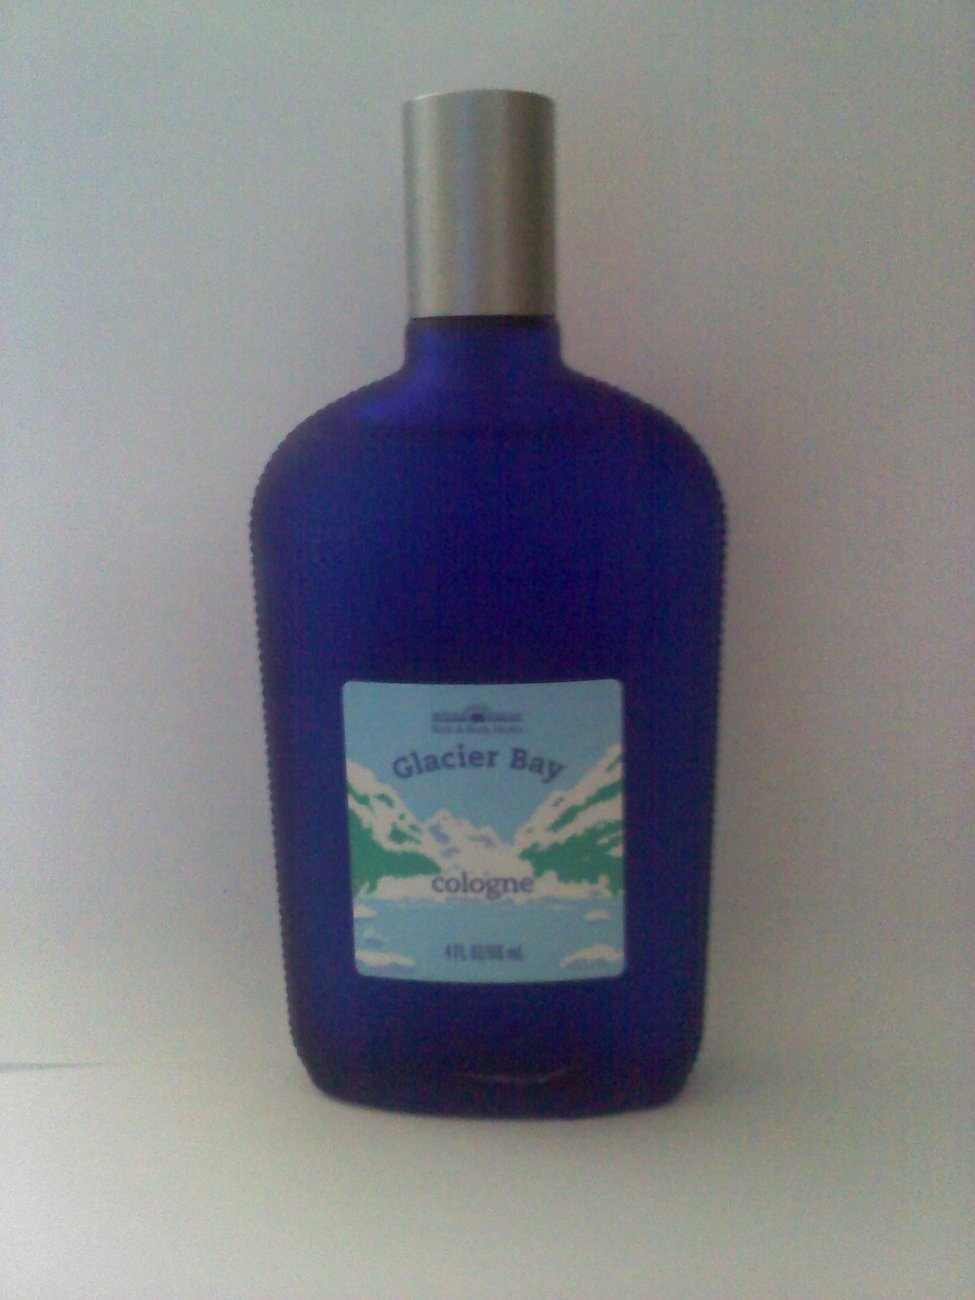 Bath & Body Works Men's GLACIER BAY Cologne 4 fl oz / 118 ml